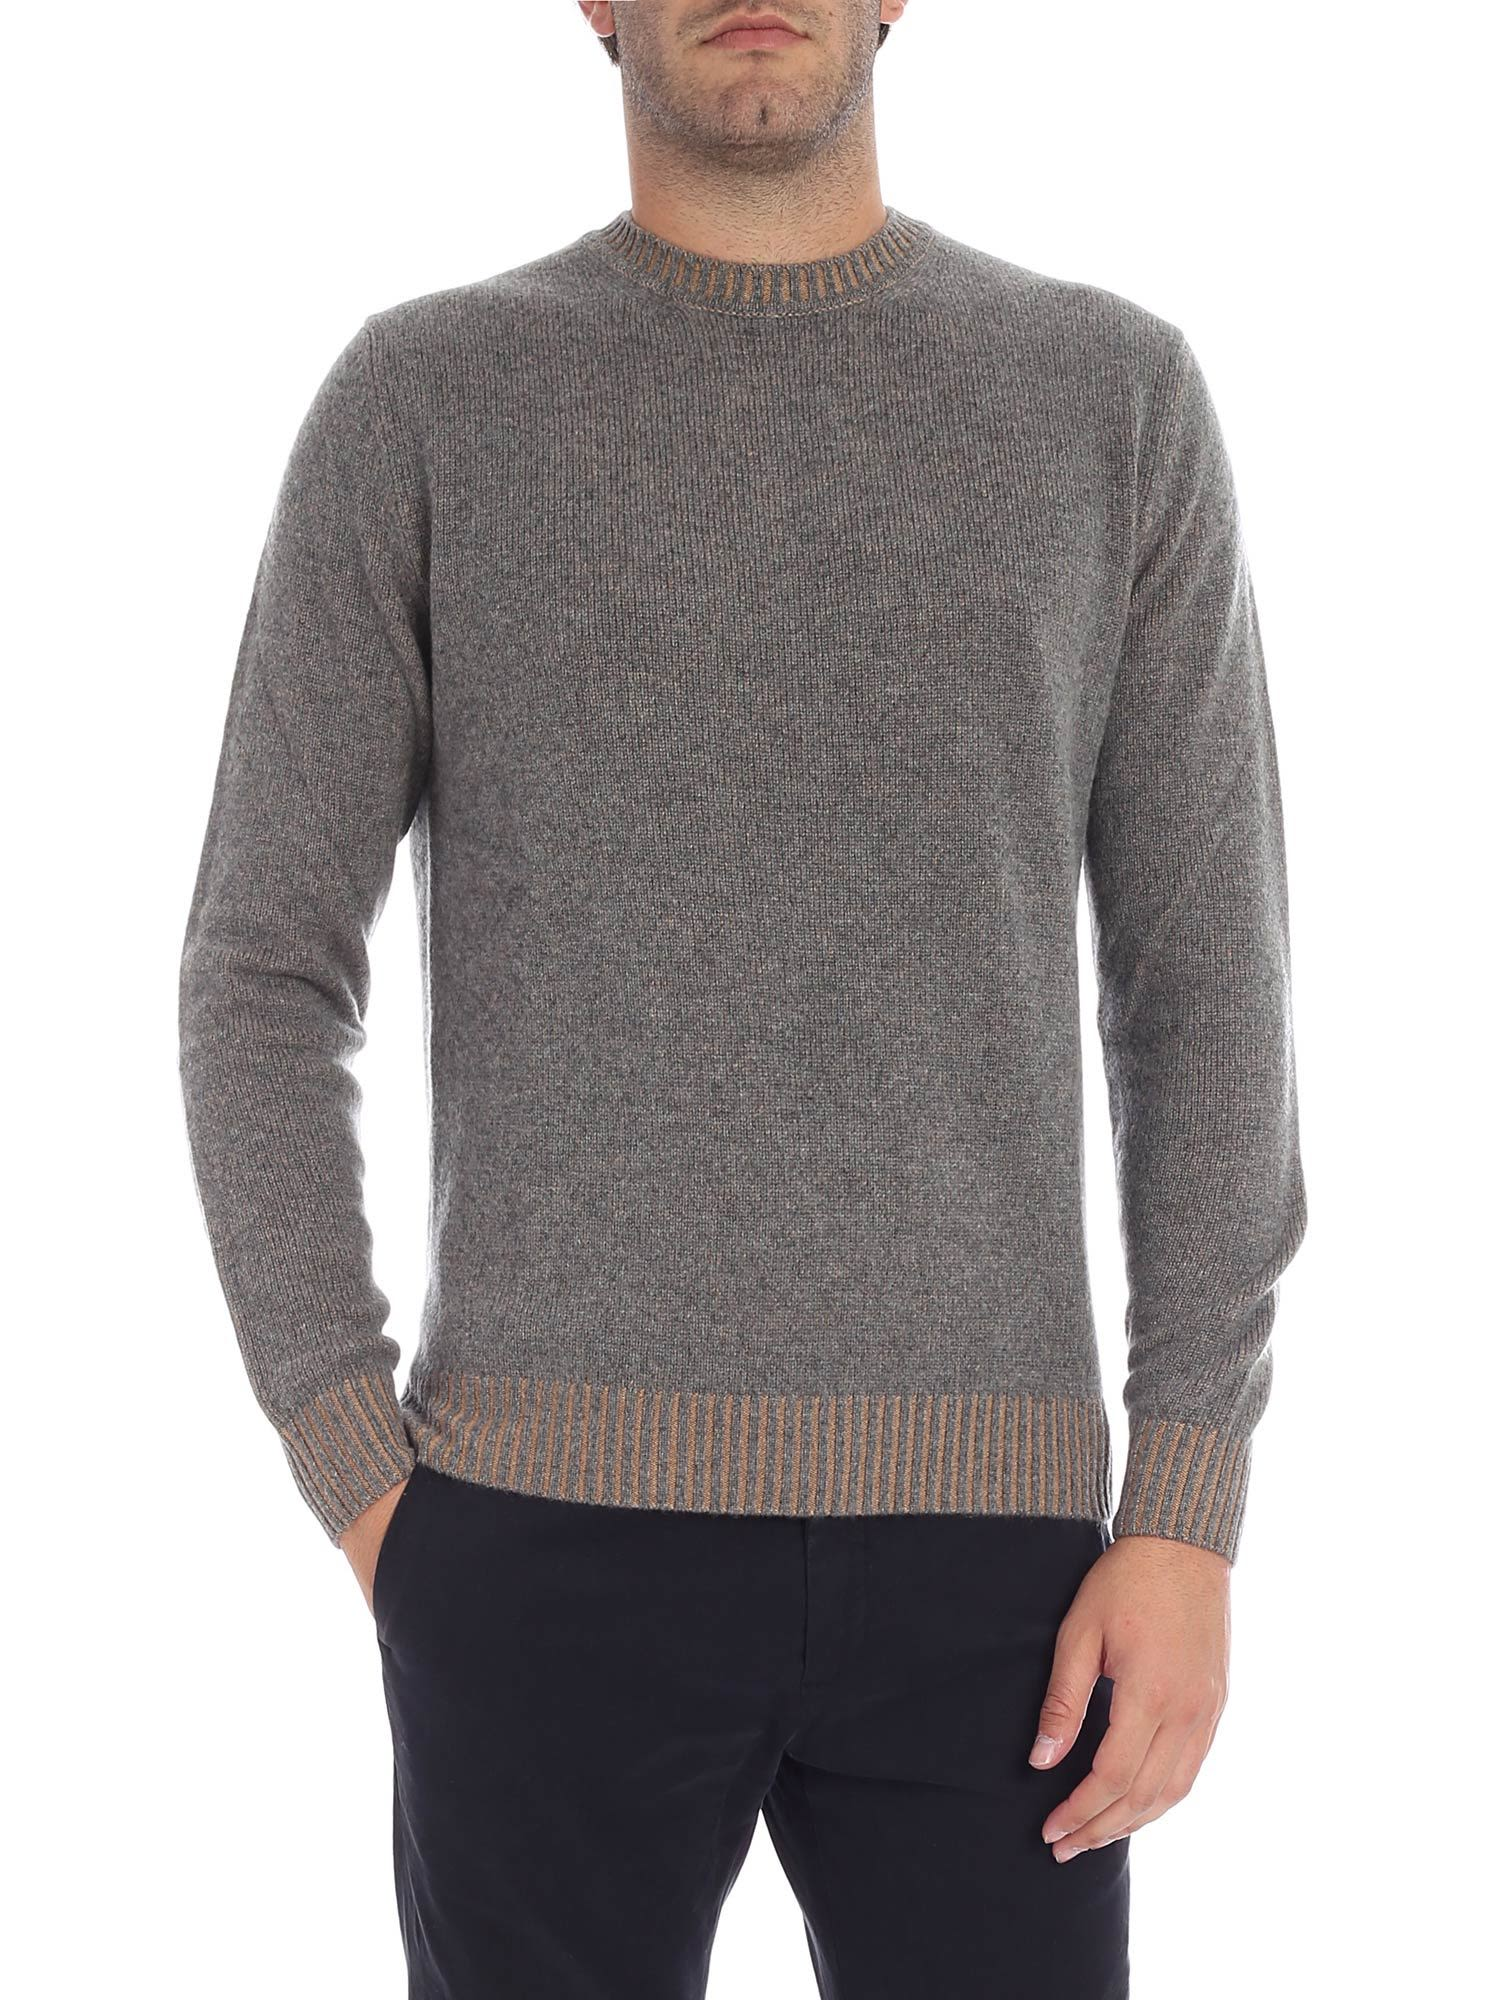 LUIGI BORRELLI Crew Neck Jumper in Grey